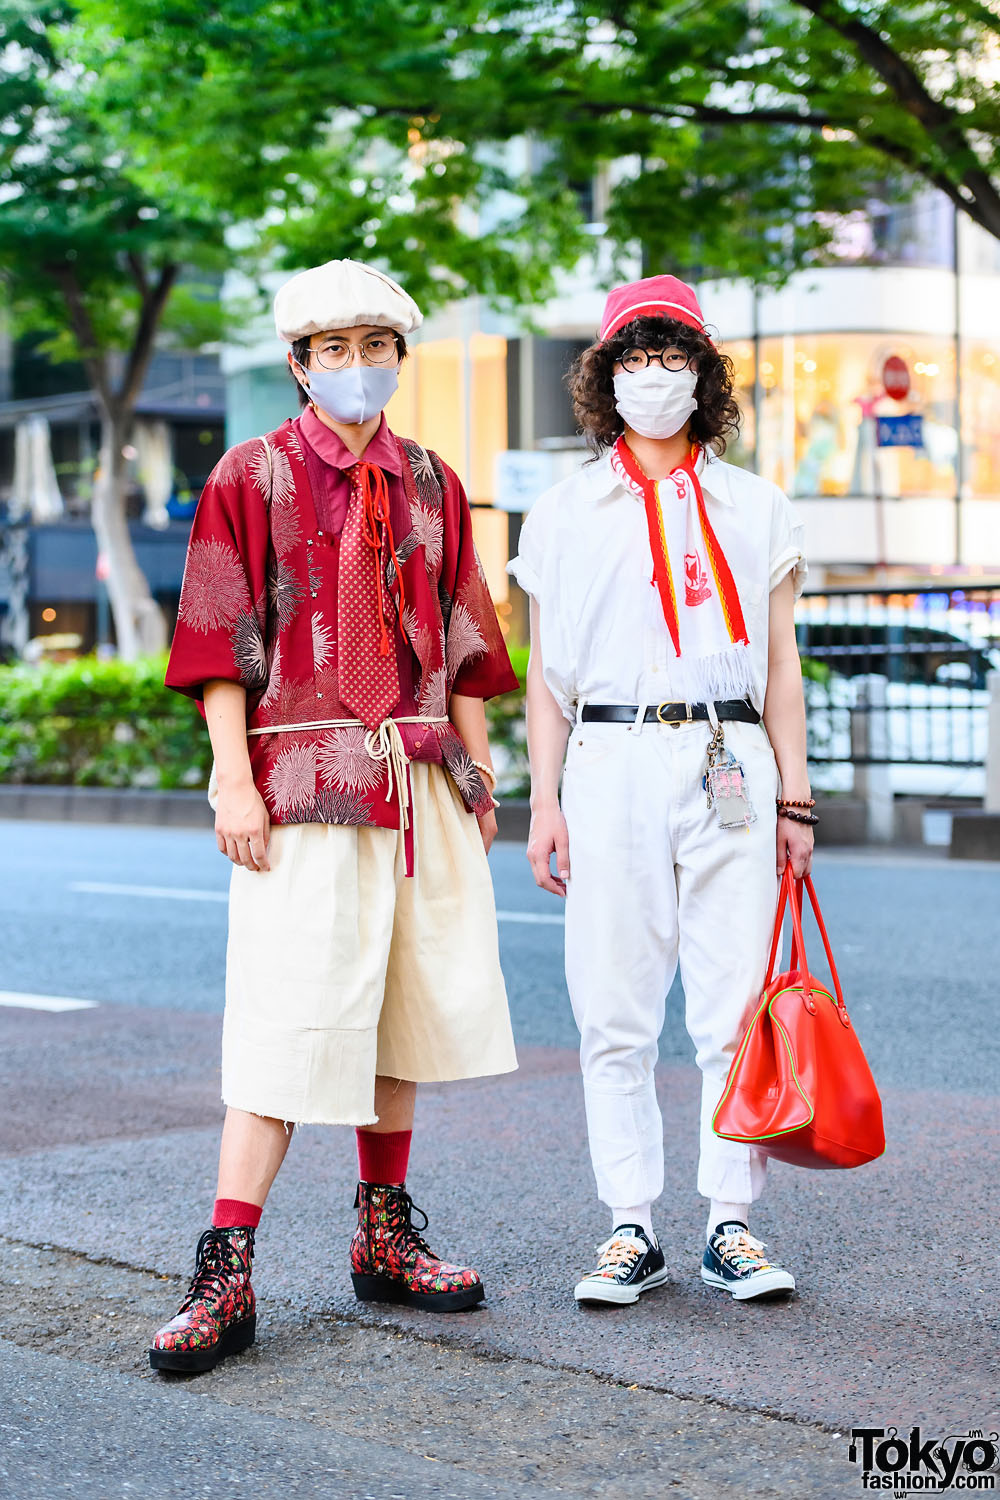 Harajuku Guys' Color-Coordinated Street Styles w/ Kimono Jacket, Handmade Fashion, Levi's Cuffed Pants, Remake Converse Sneakers & Alter Venomv Strawberry Boots